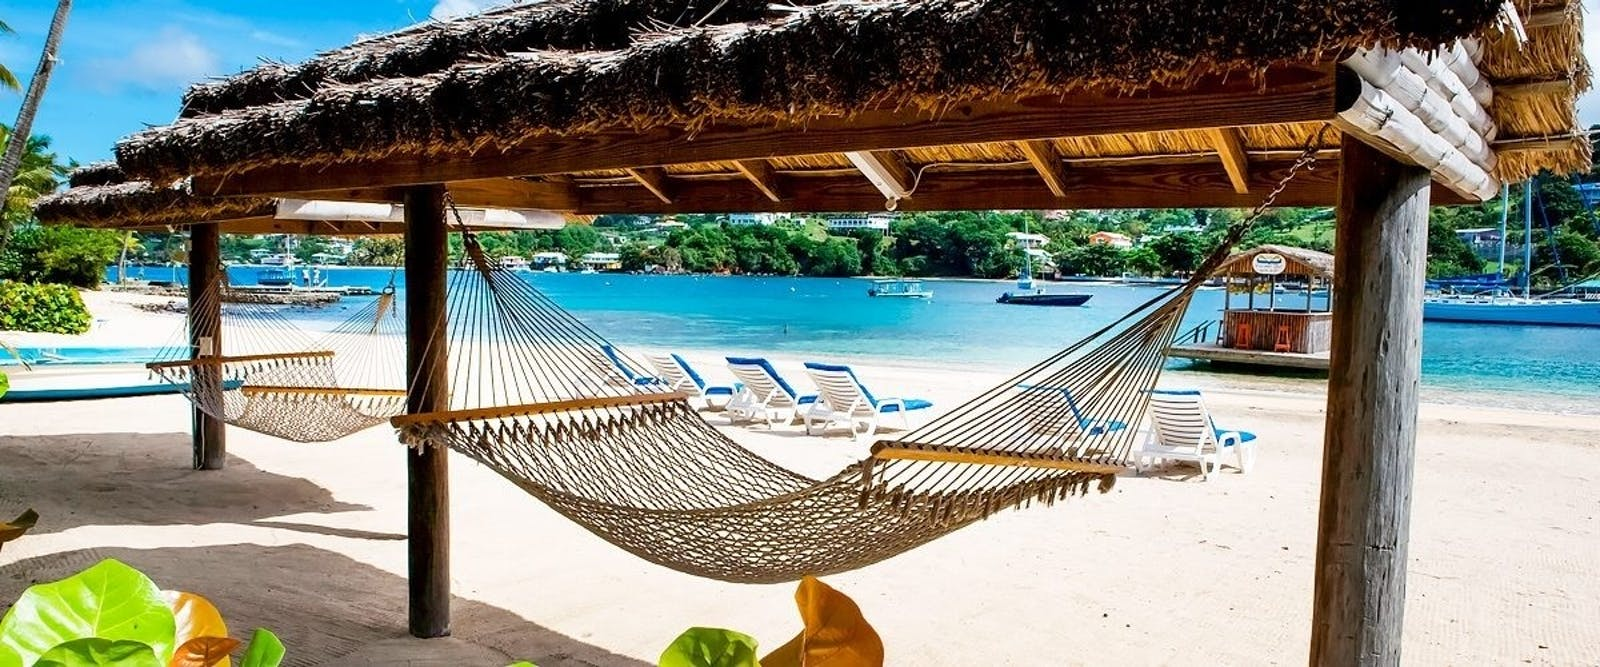 Beach Hammock at Young Island, St. Vincent & The Grenadines, Caribbean